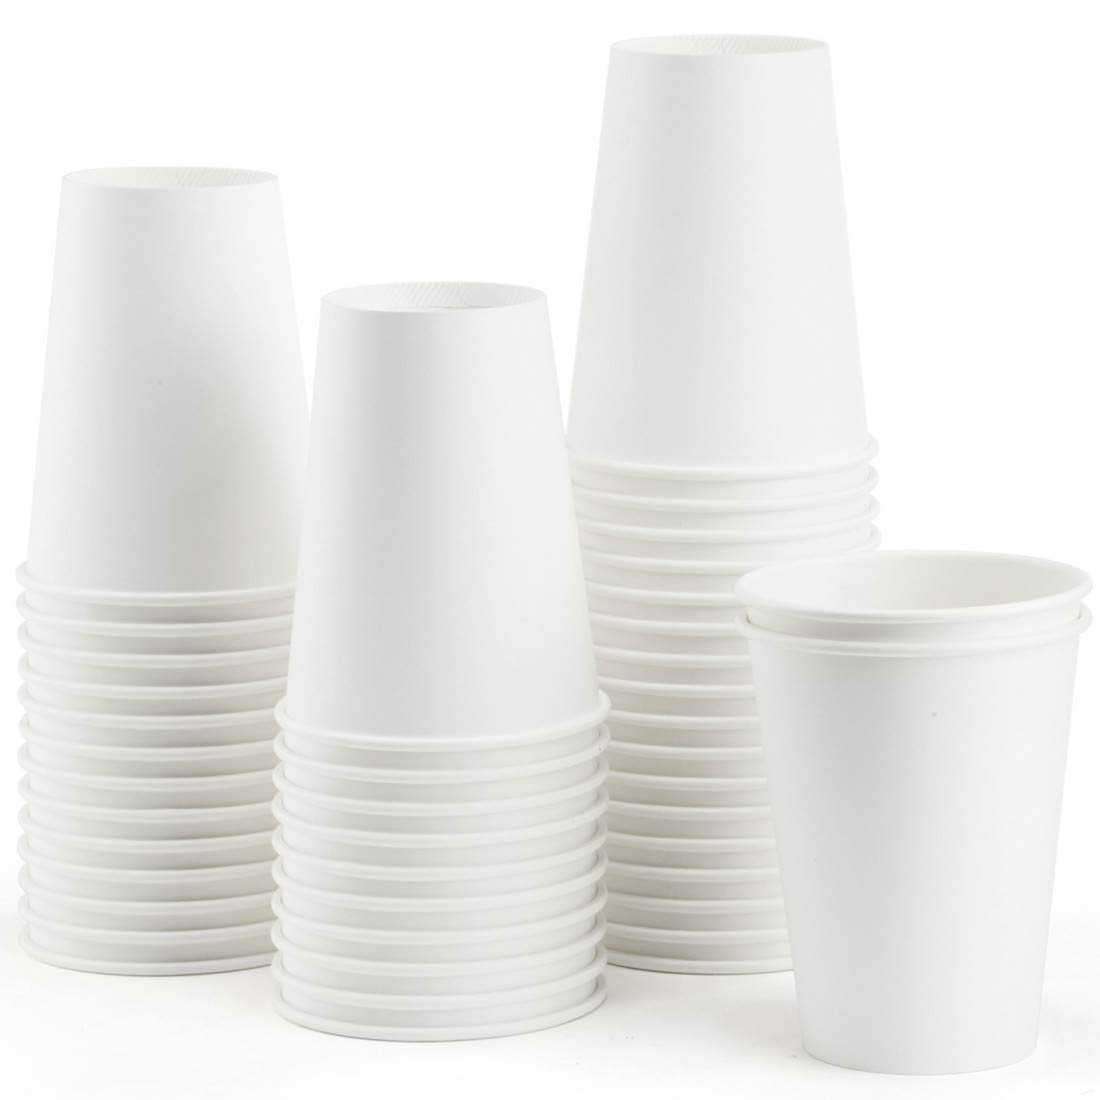 Eupako 12 oz Disposable White Paper Cups 120 Pack, Coffee Cups, Drink Hot Cups